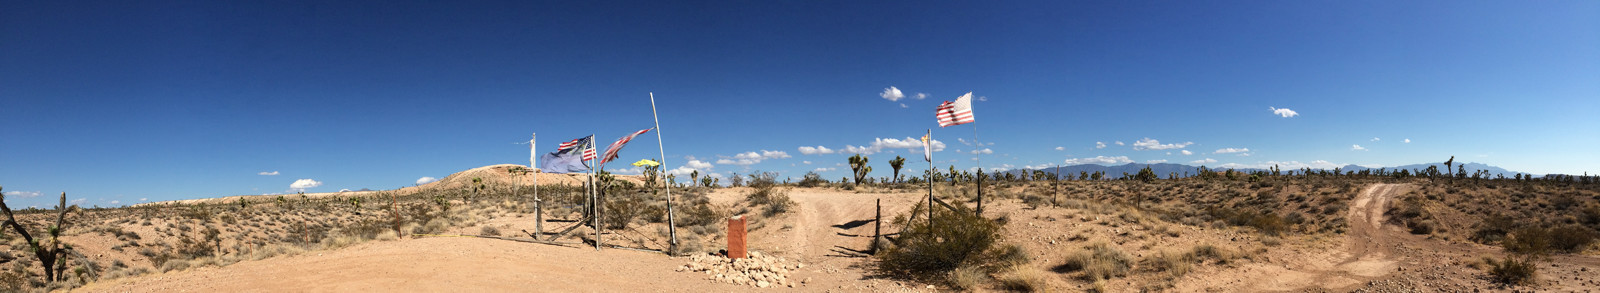 Looking East at Western end of line - at NV/UT/AZ corner  37 deg 0.02376' N Lat  114 deg 3.03582' W Lon